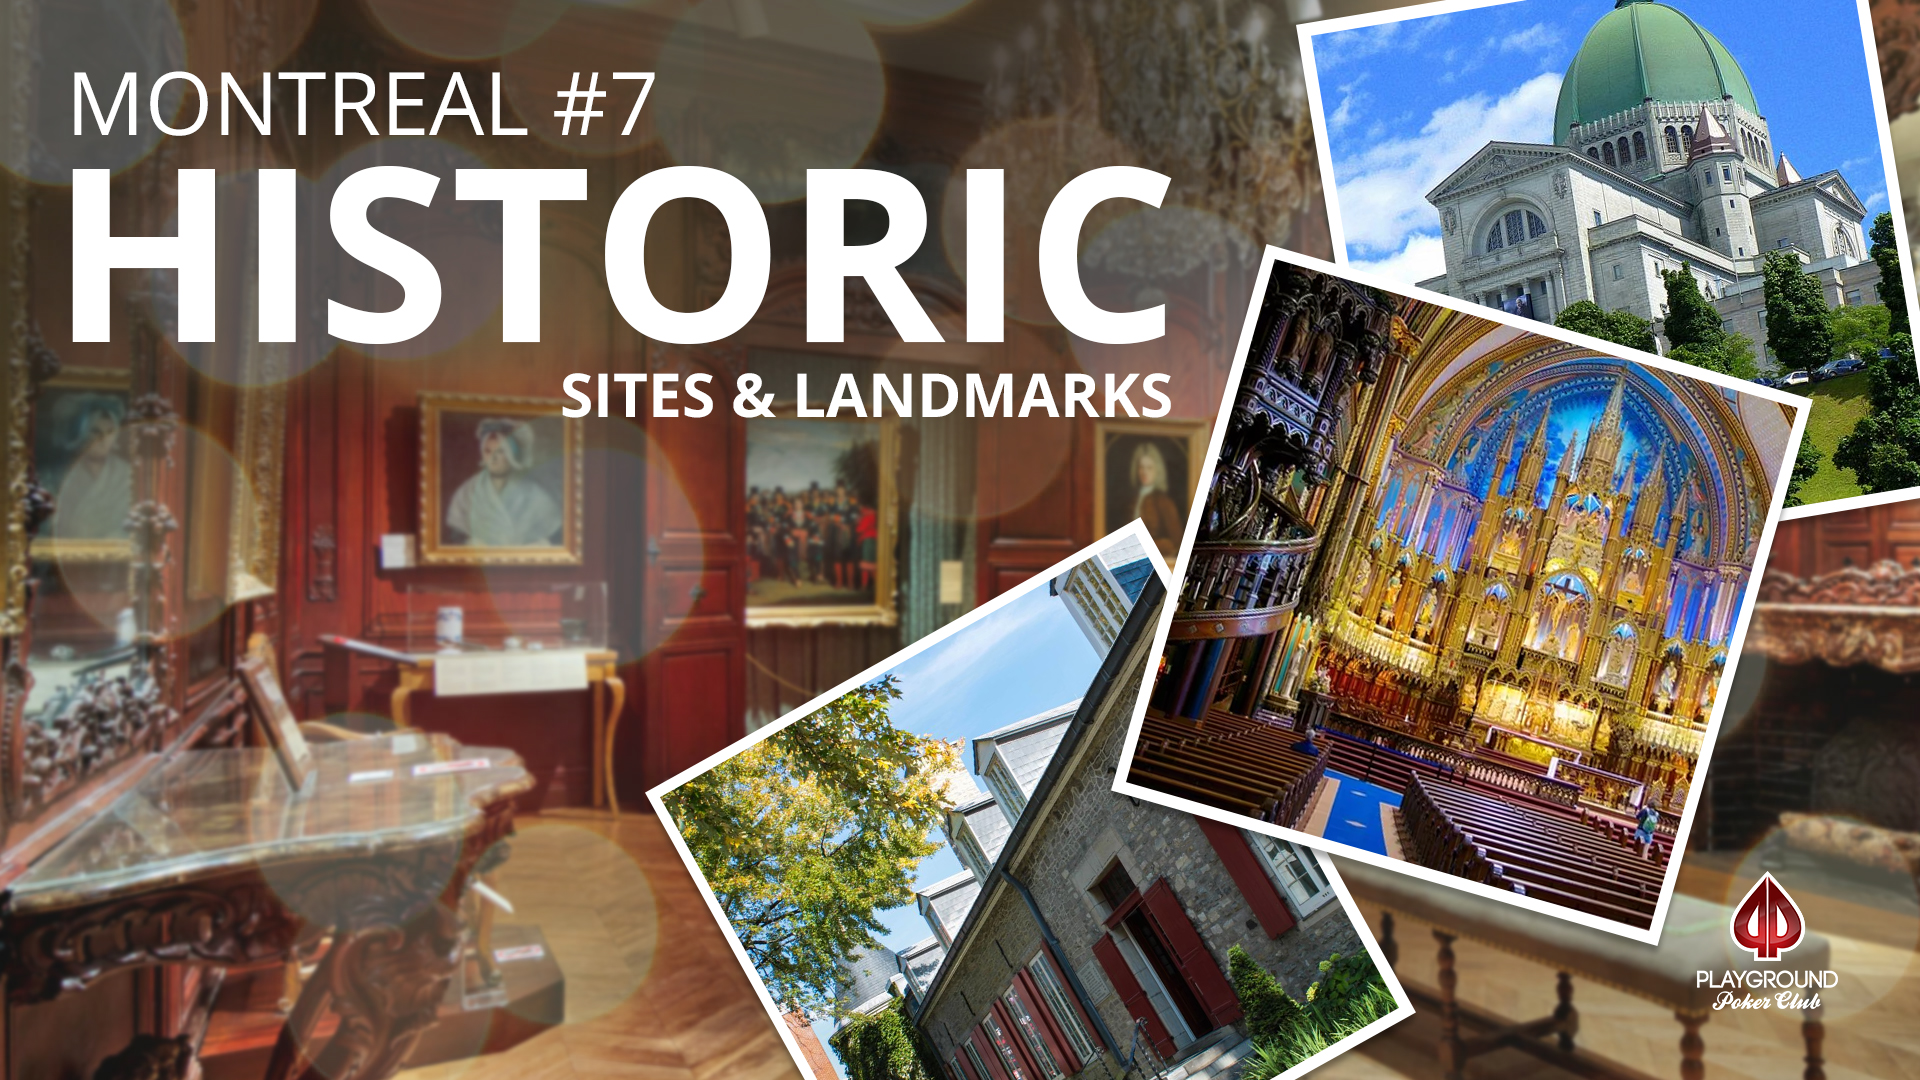 Number 7 on our Top 10 – Historic Sites & Landmarks